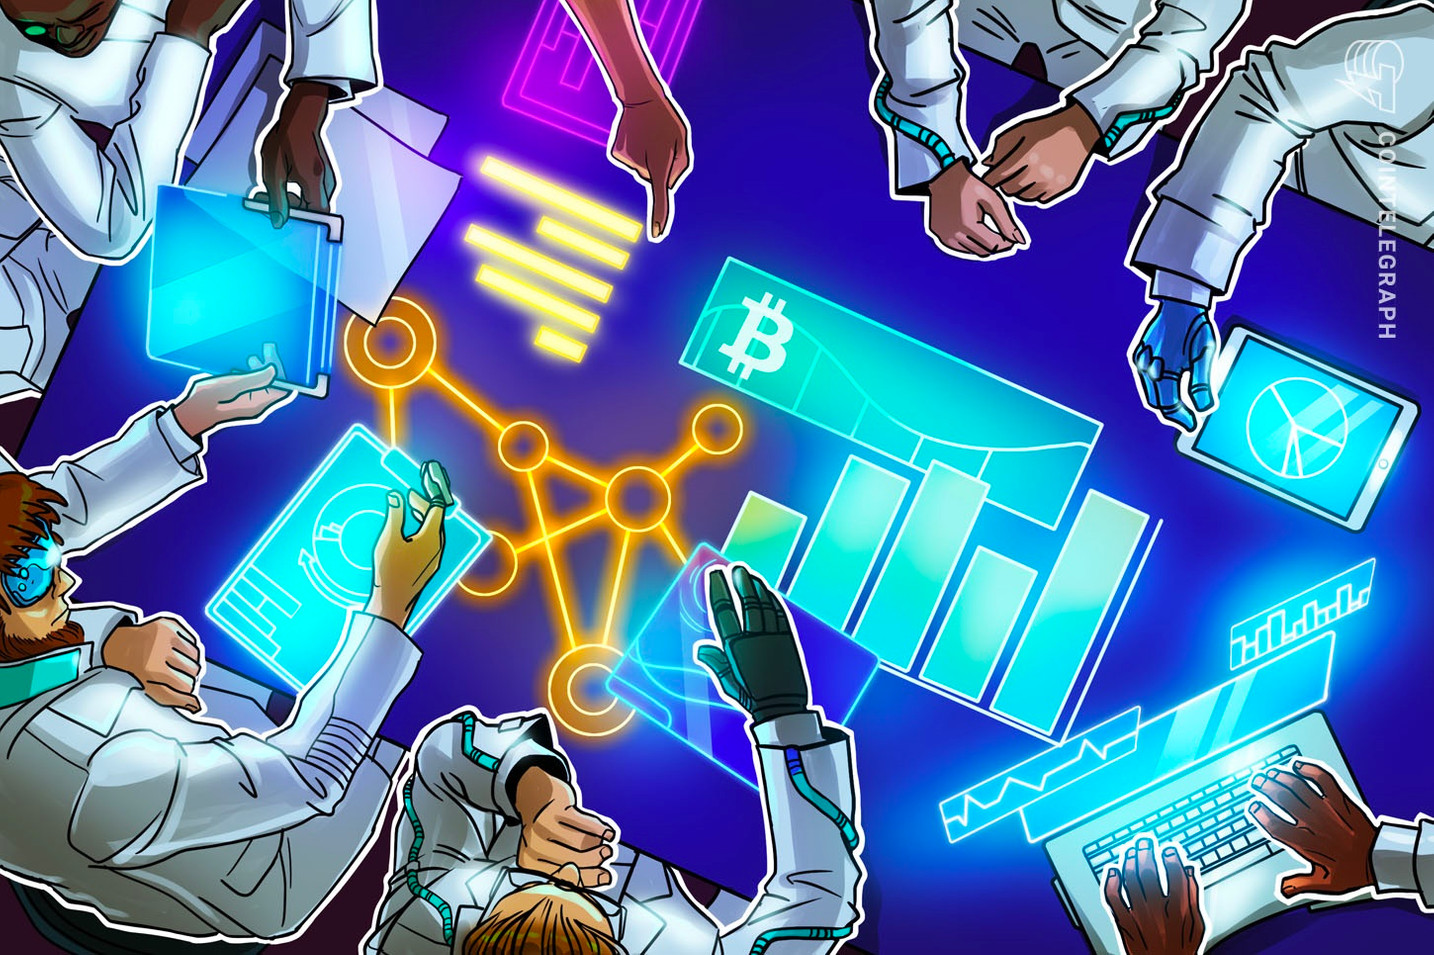 Bitcoin diverges from legacy markets as 'breathtaking' rally predicted